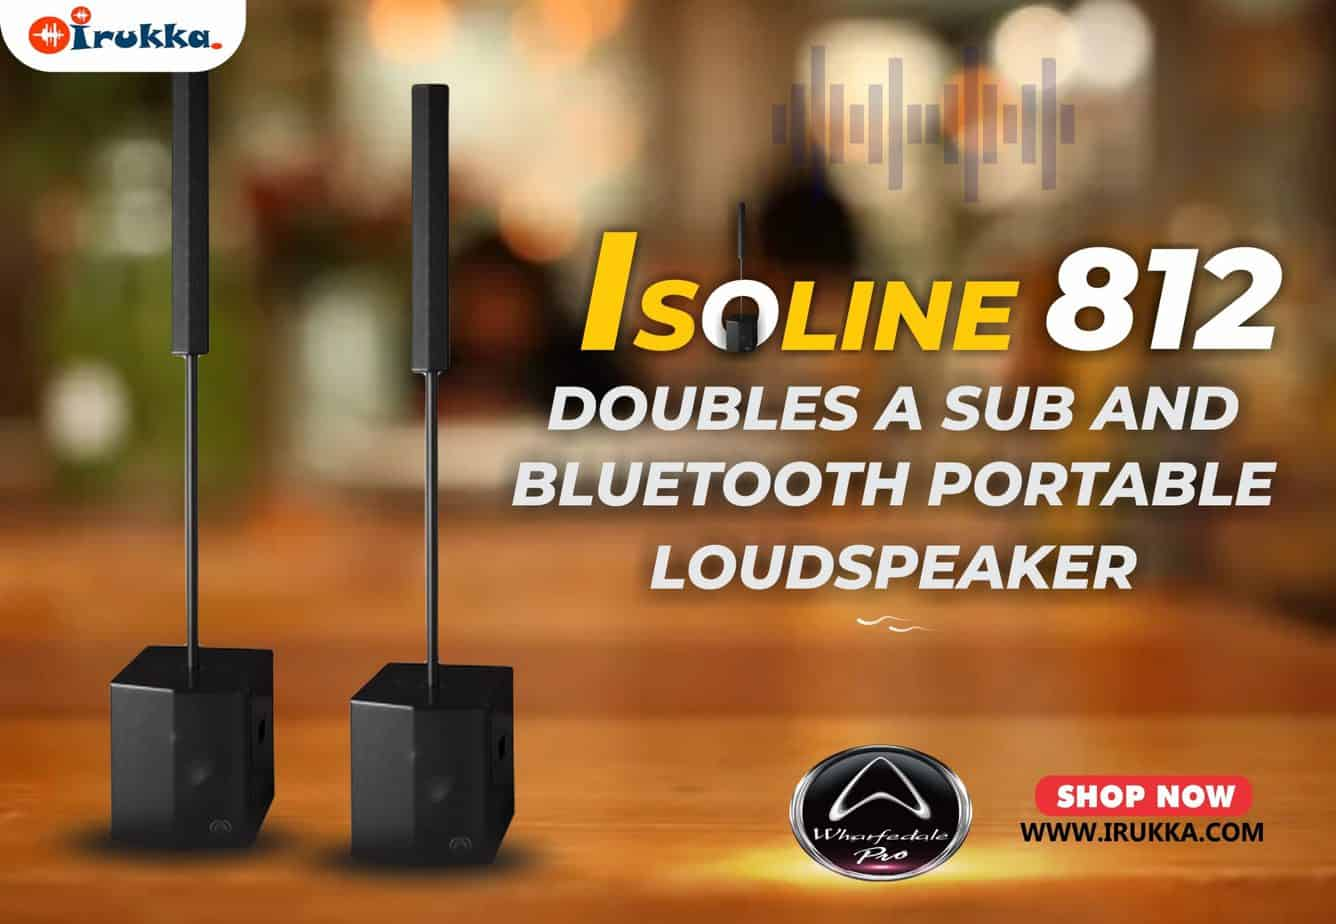 Isoline 812 Doubles a Sub and Bluetooth Portable Loudspeaker